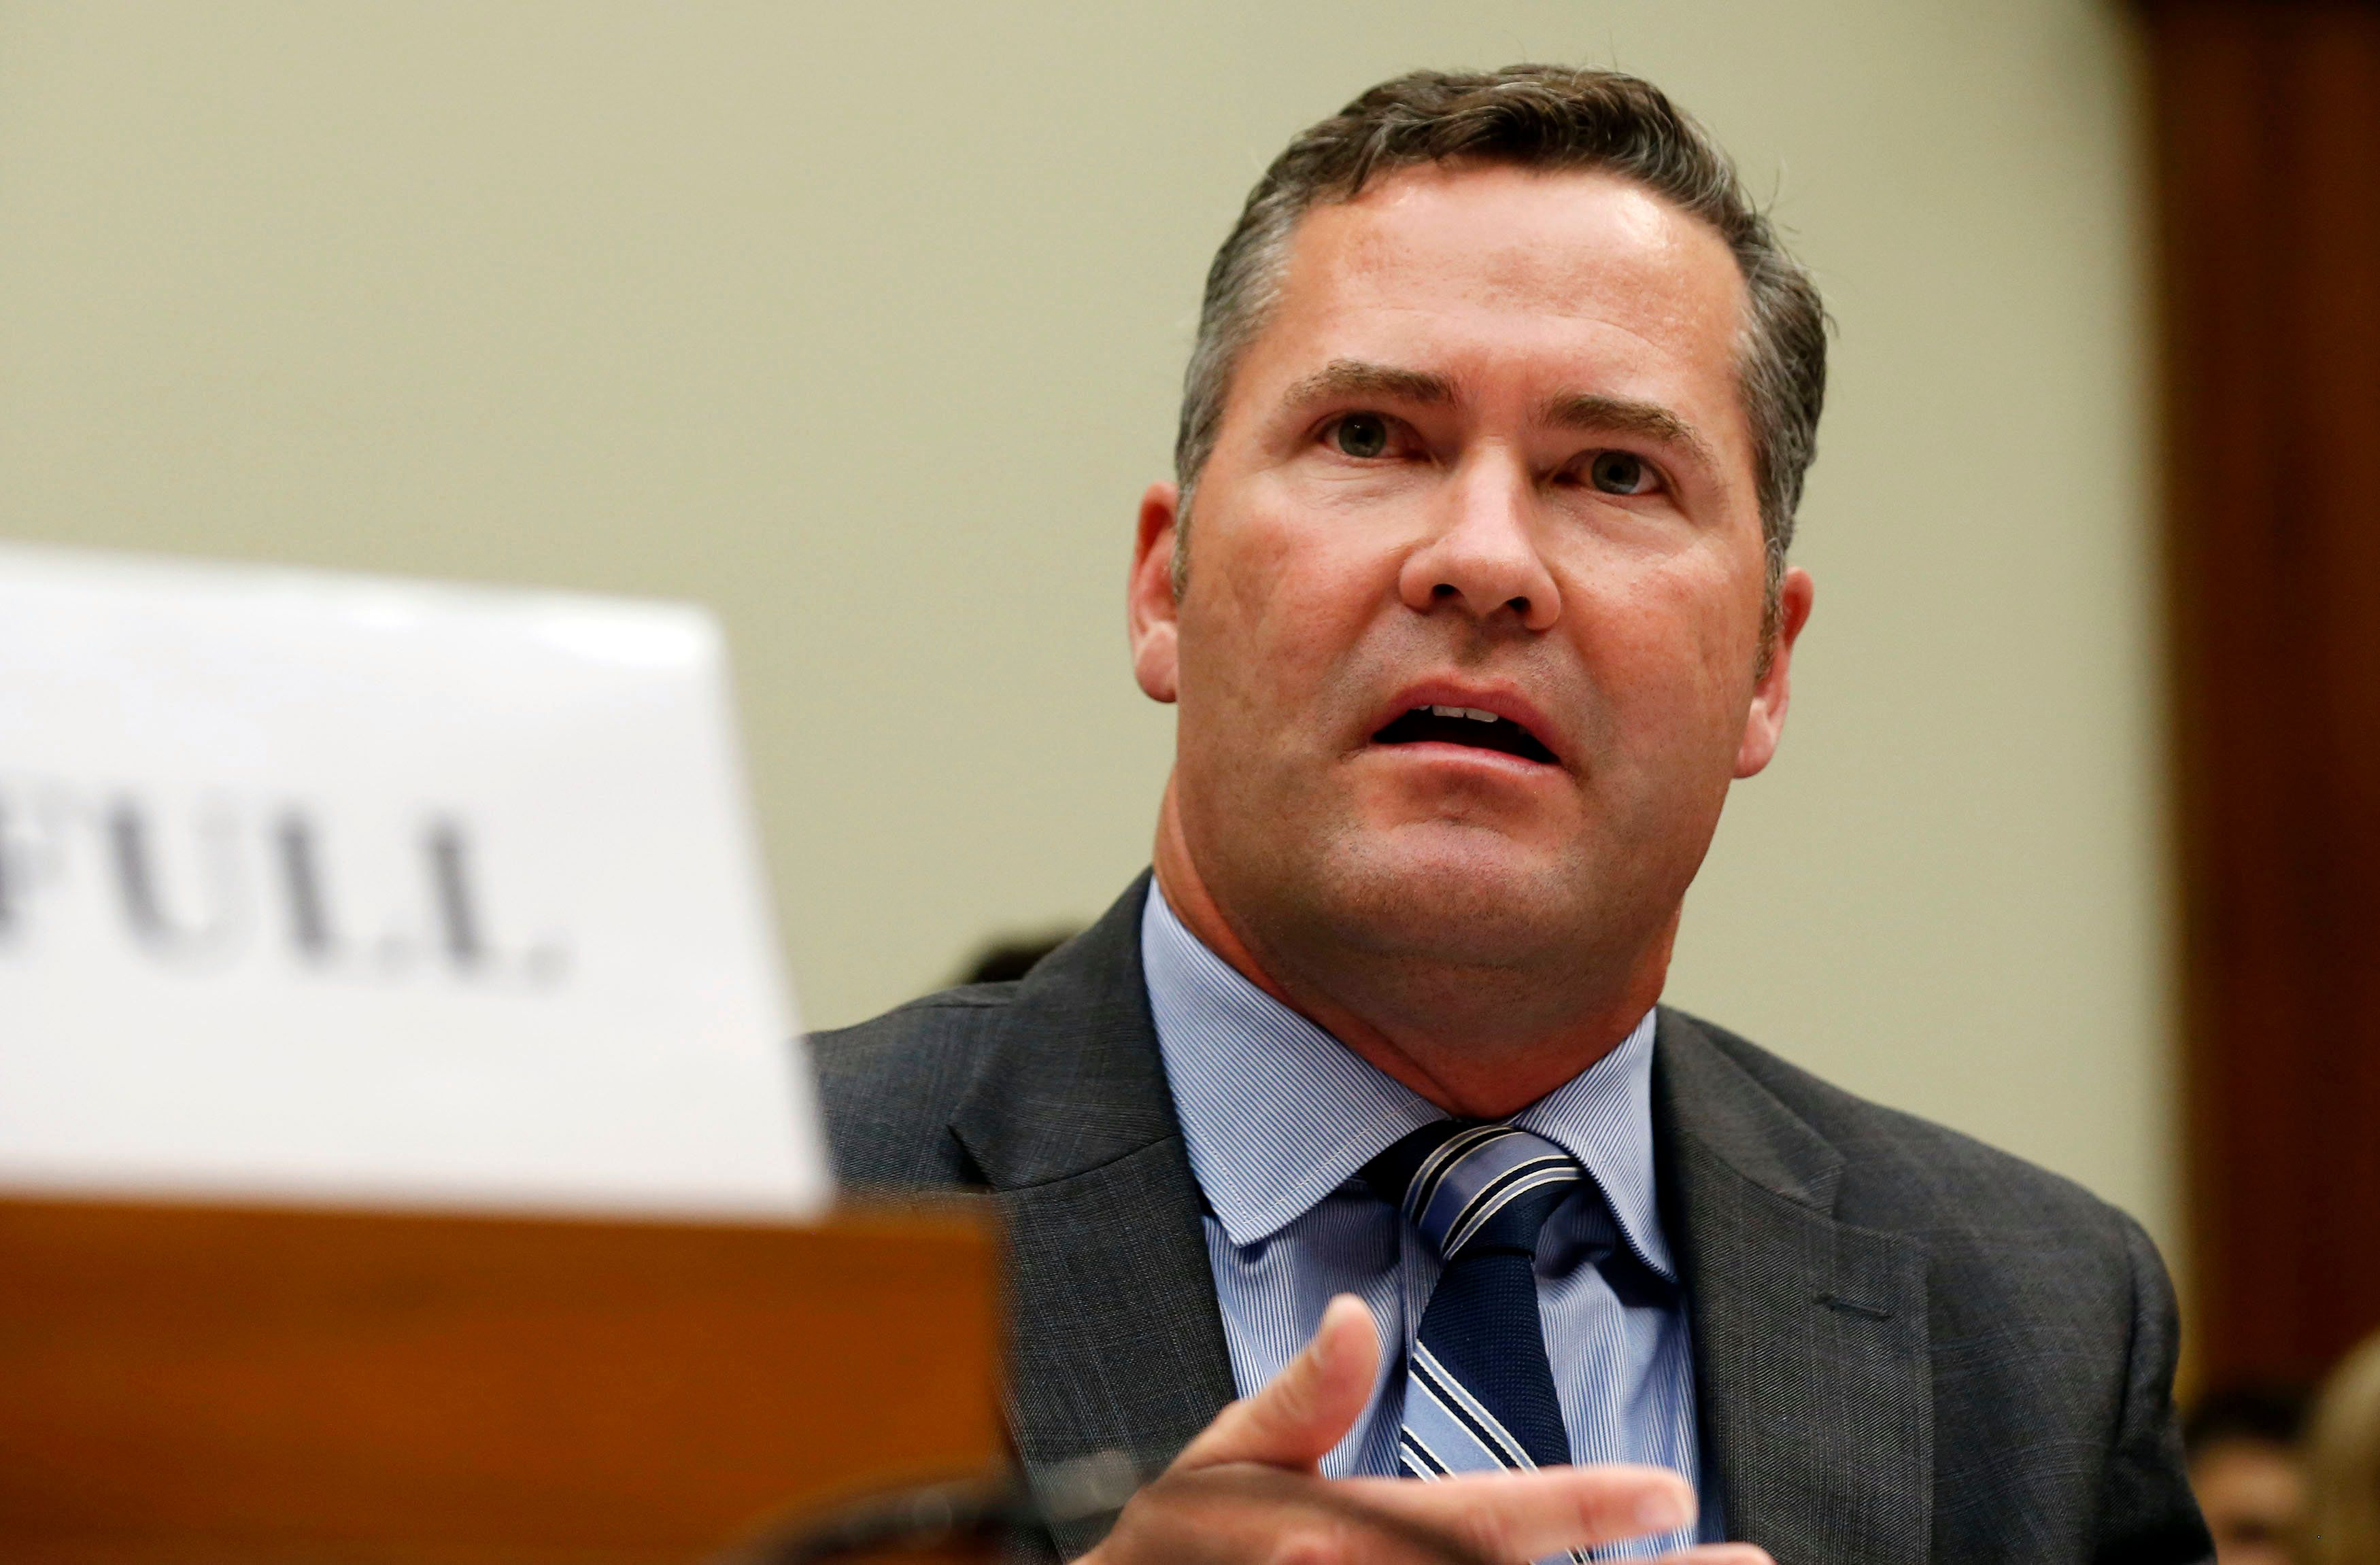 Michael Waltz testifies about his leading a military team and their search efforts for missing soldier Sgt. Bowe Bergdahl, while at a House Foreign Affairs Middle East and North Africa Subcommittee about the exchange of prisoners for Bergdahl while on Capitol Hill in Washington, June 18, 2014.     REUTERS/Larry Downing   (UNITED STATES - Tags: POLITICS MILITARY)